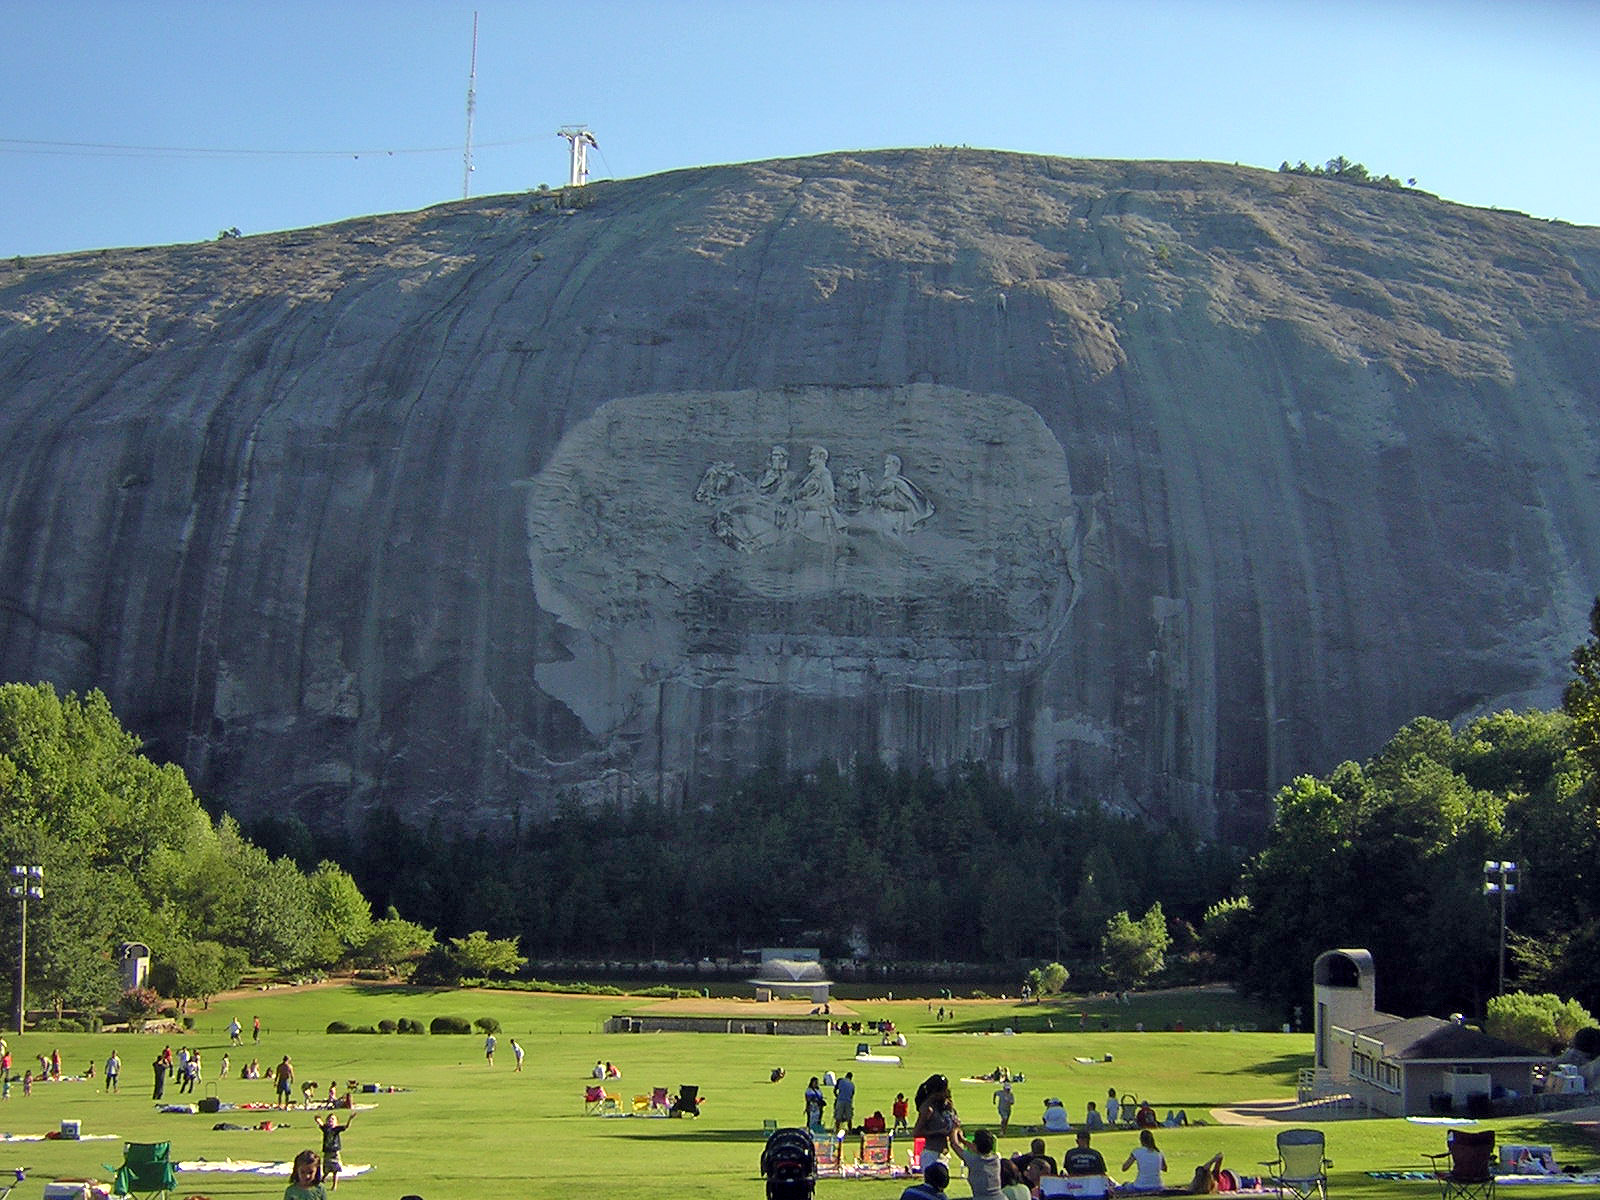 The North Face of the mountain featuring the bas-relief carving